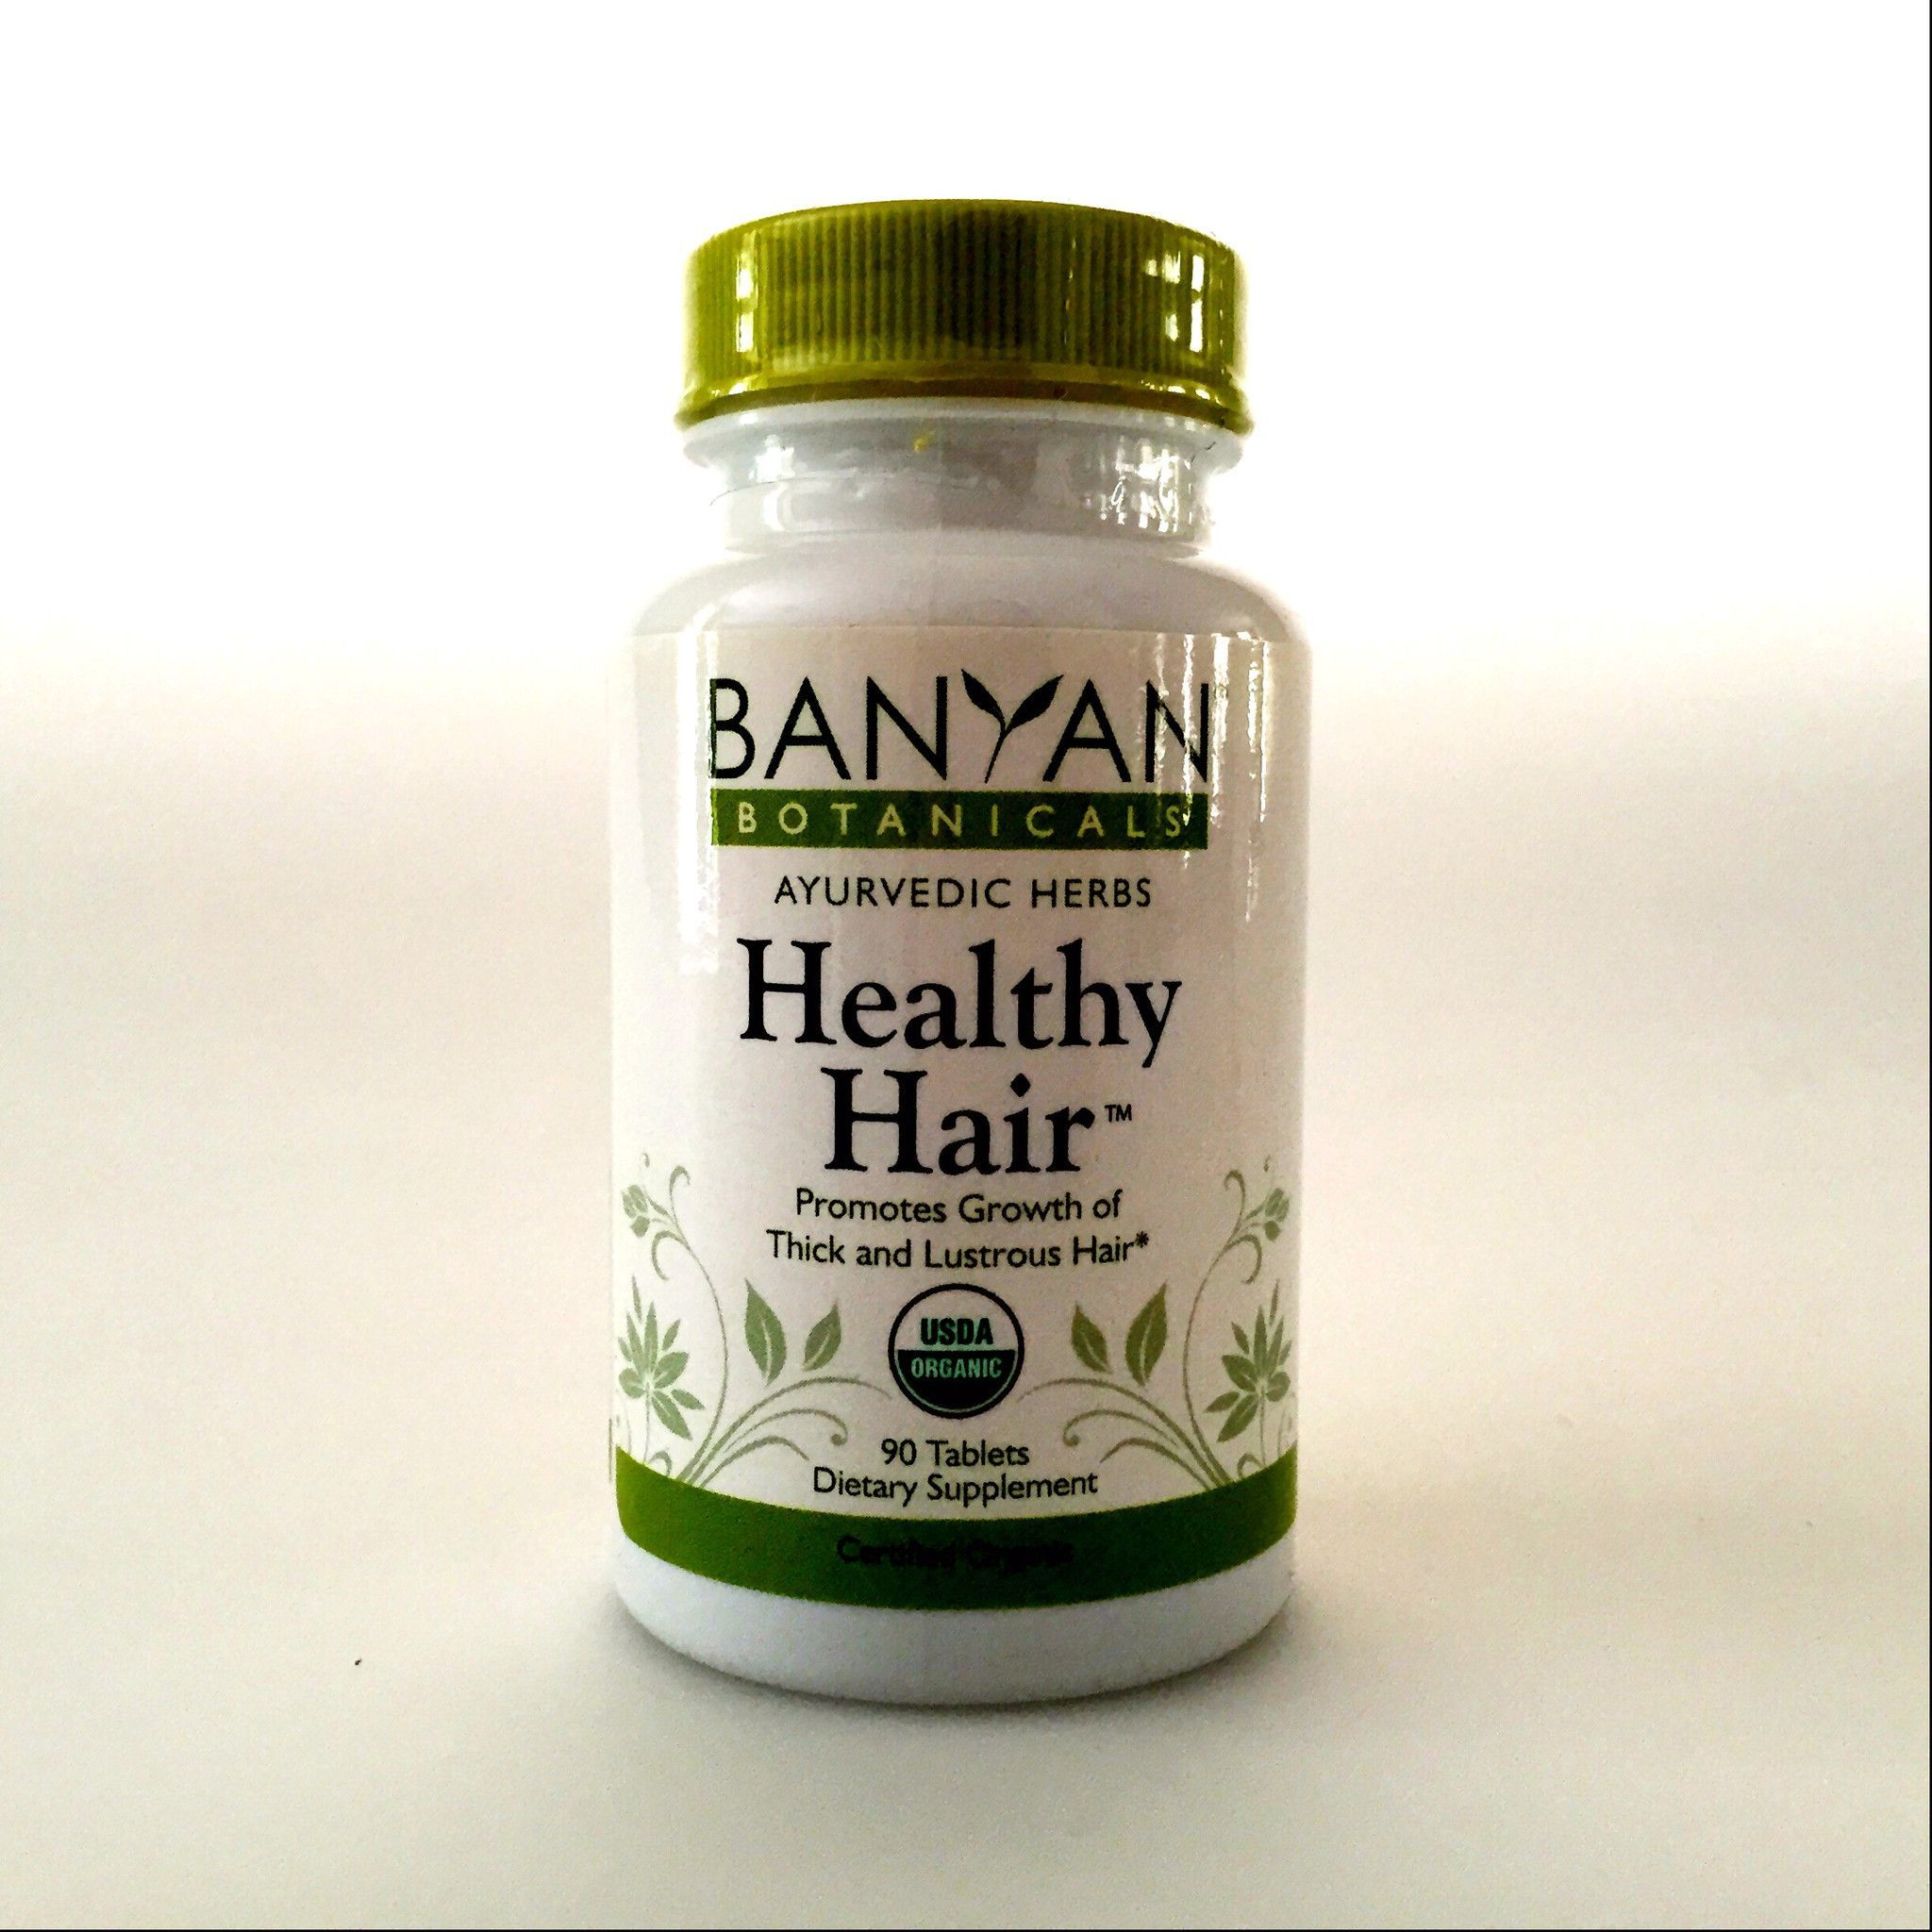 Banyan Botanicals Healthy Hair Tablets Yoga International Healthy Hair Maintaining Healthy Hair Long Healthy Hair